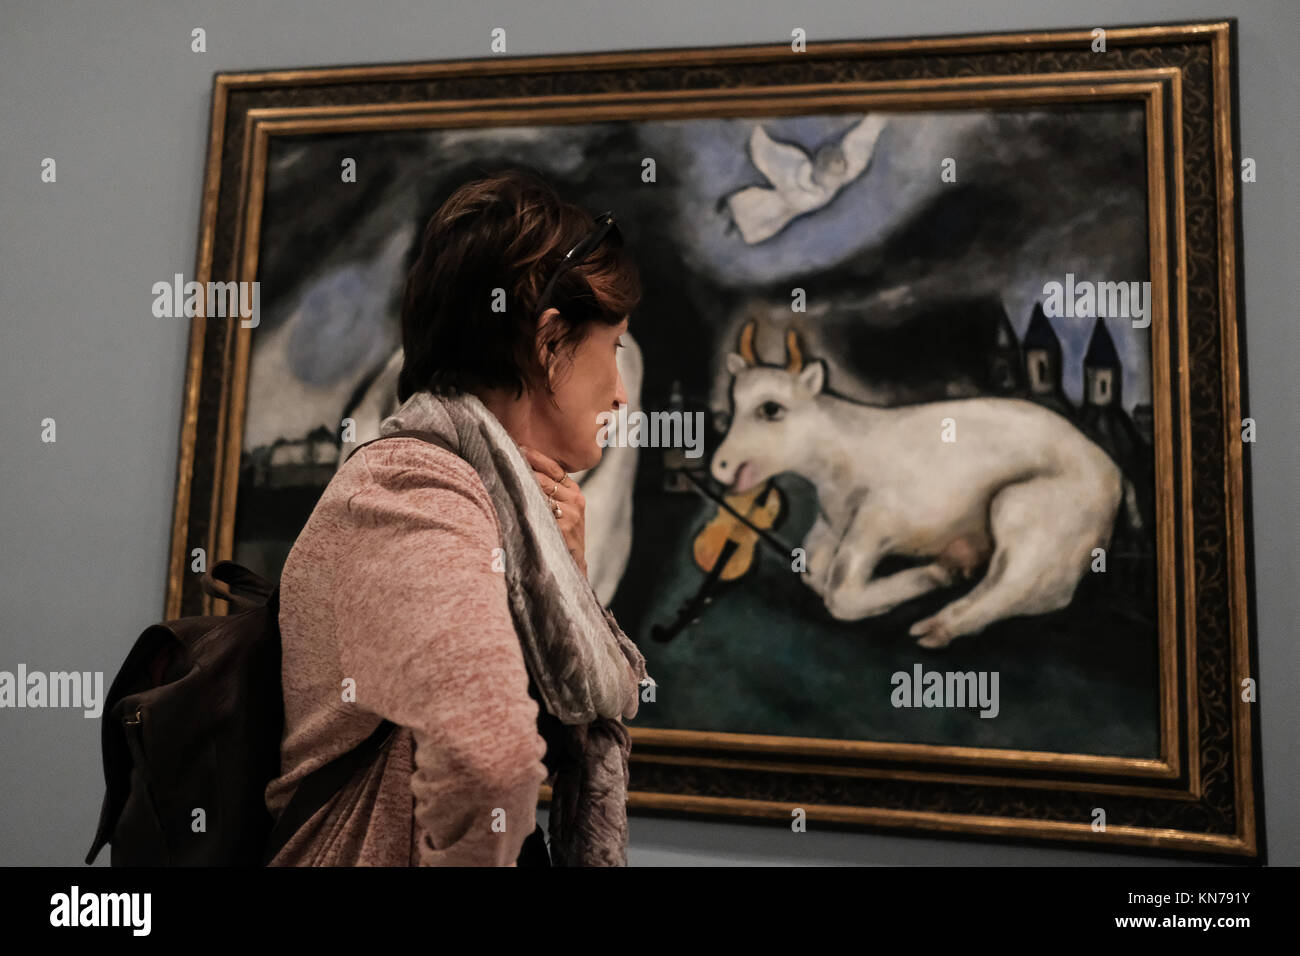 A woman studies a painting by Marc Chagall, on display in the Tel Aviv Museum of Art. - Stock Image